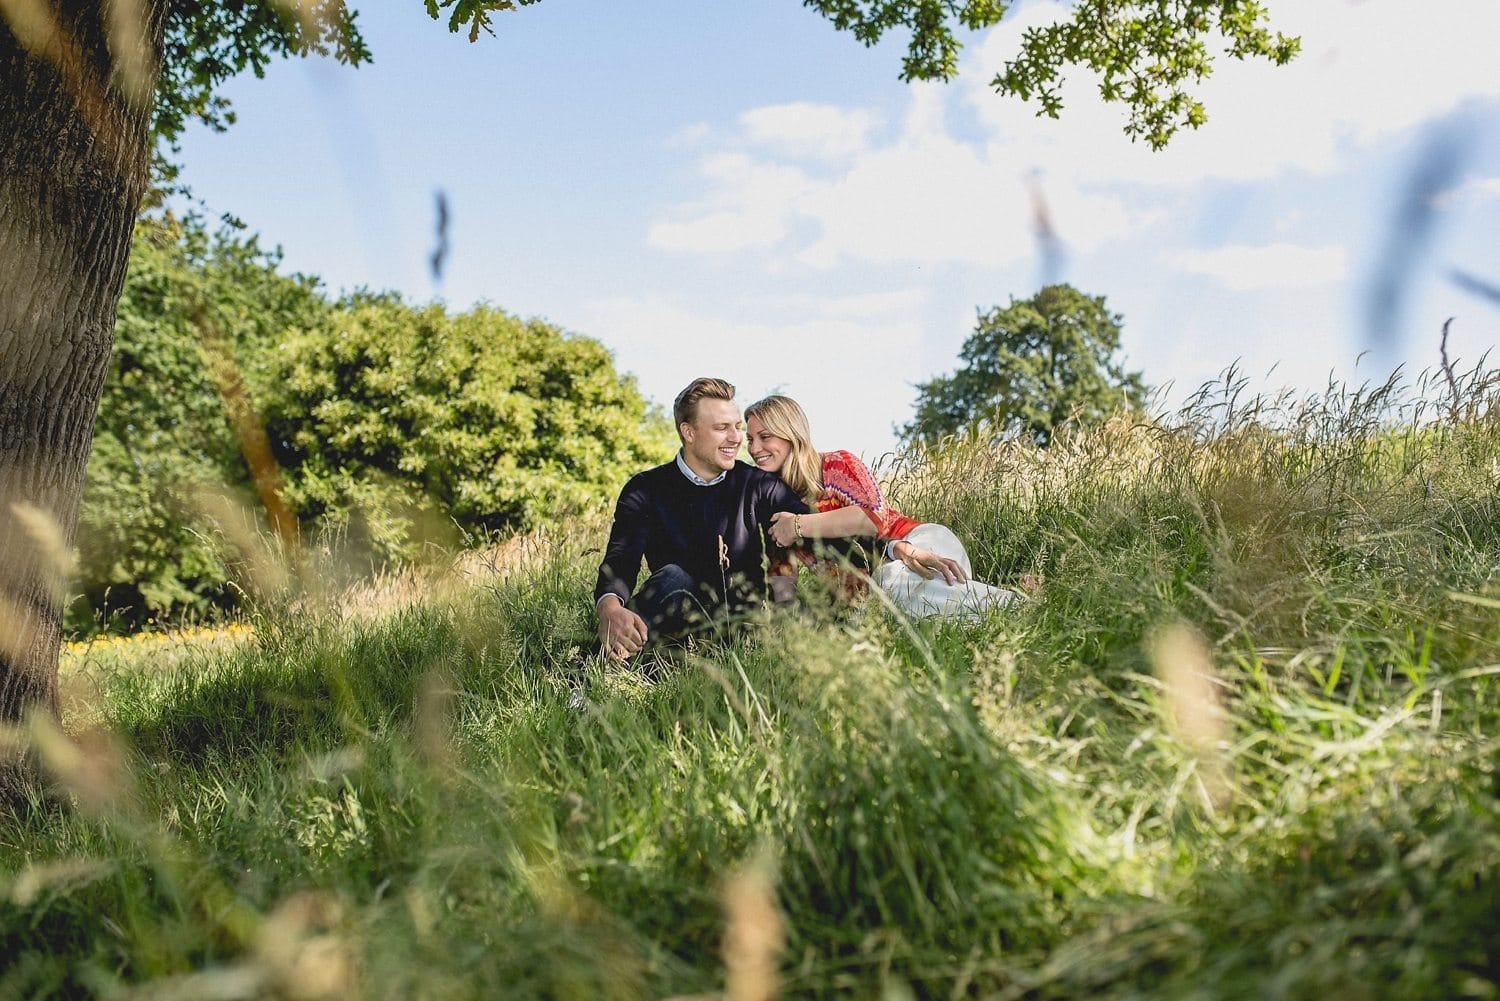 Summer Wild Flower Meadow Coworth Park Prewedding Shoot